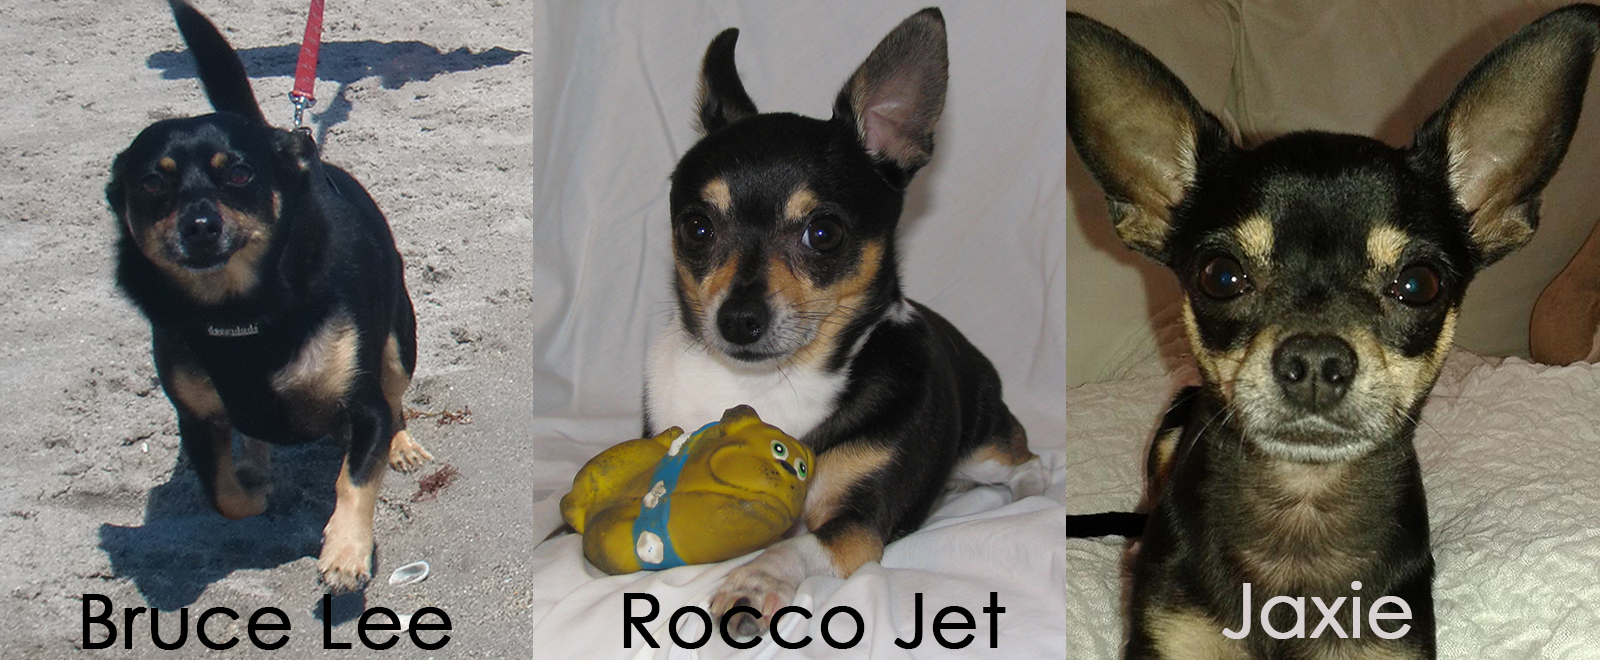 Bruce Lee, Rocco Jet and Jax